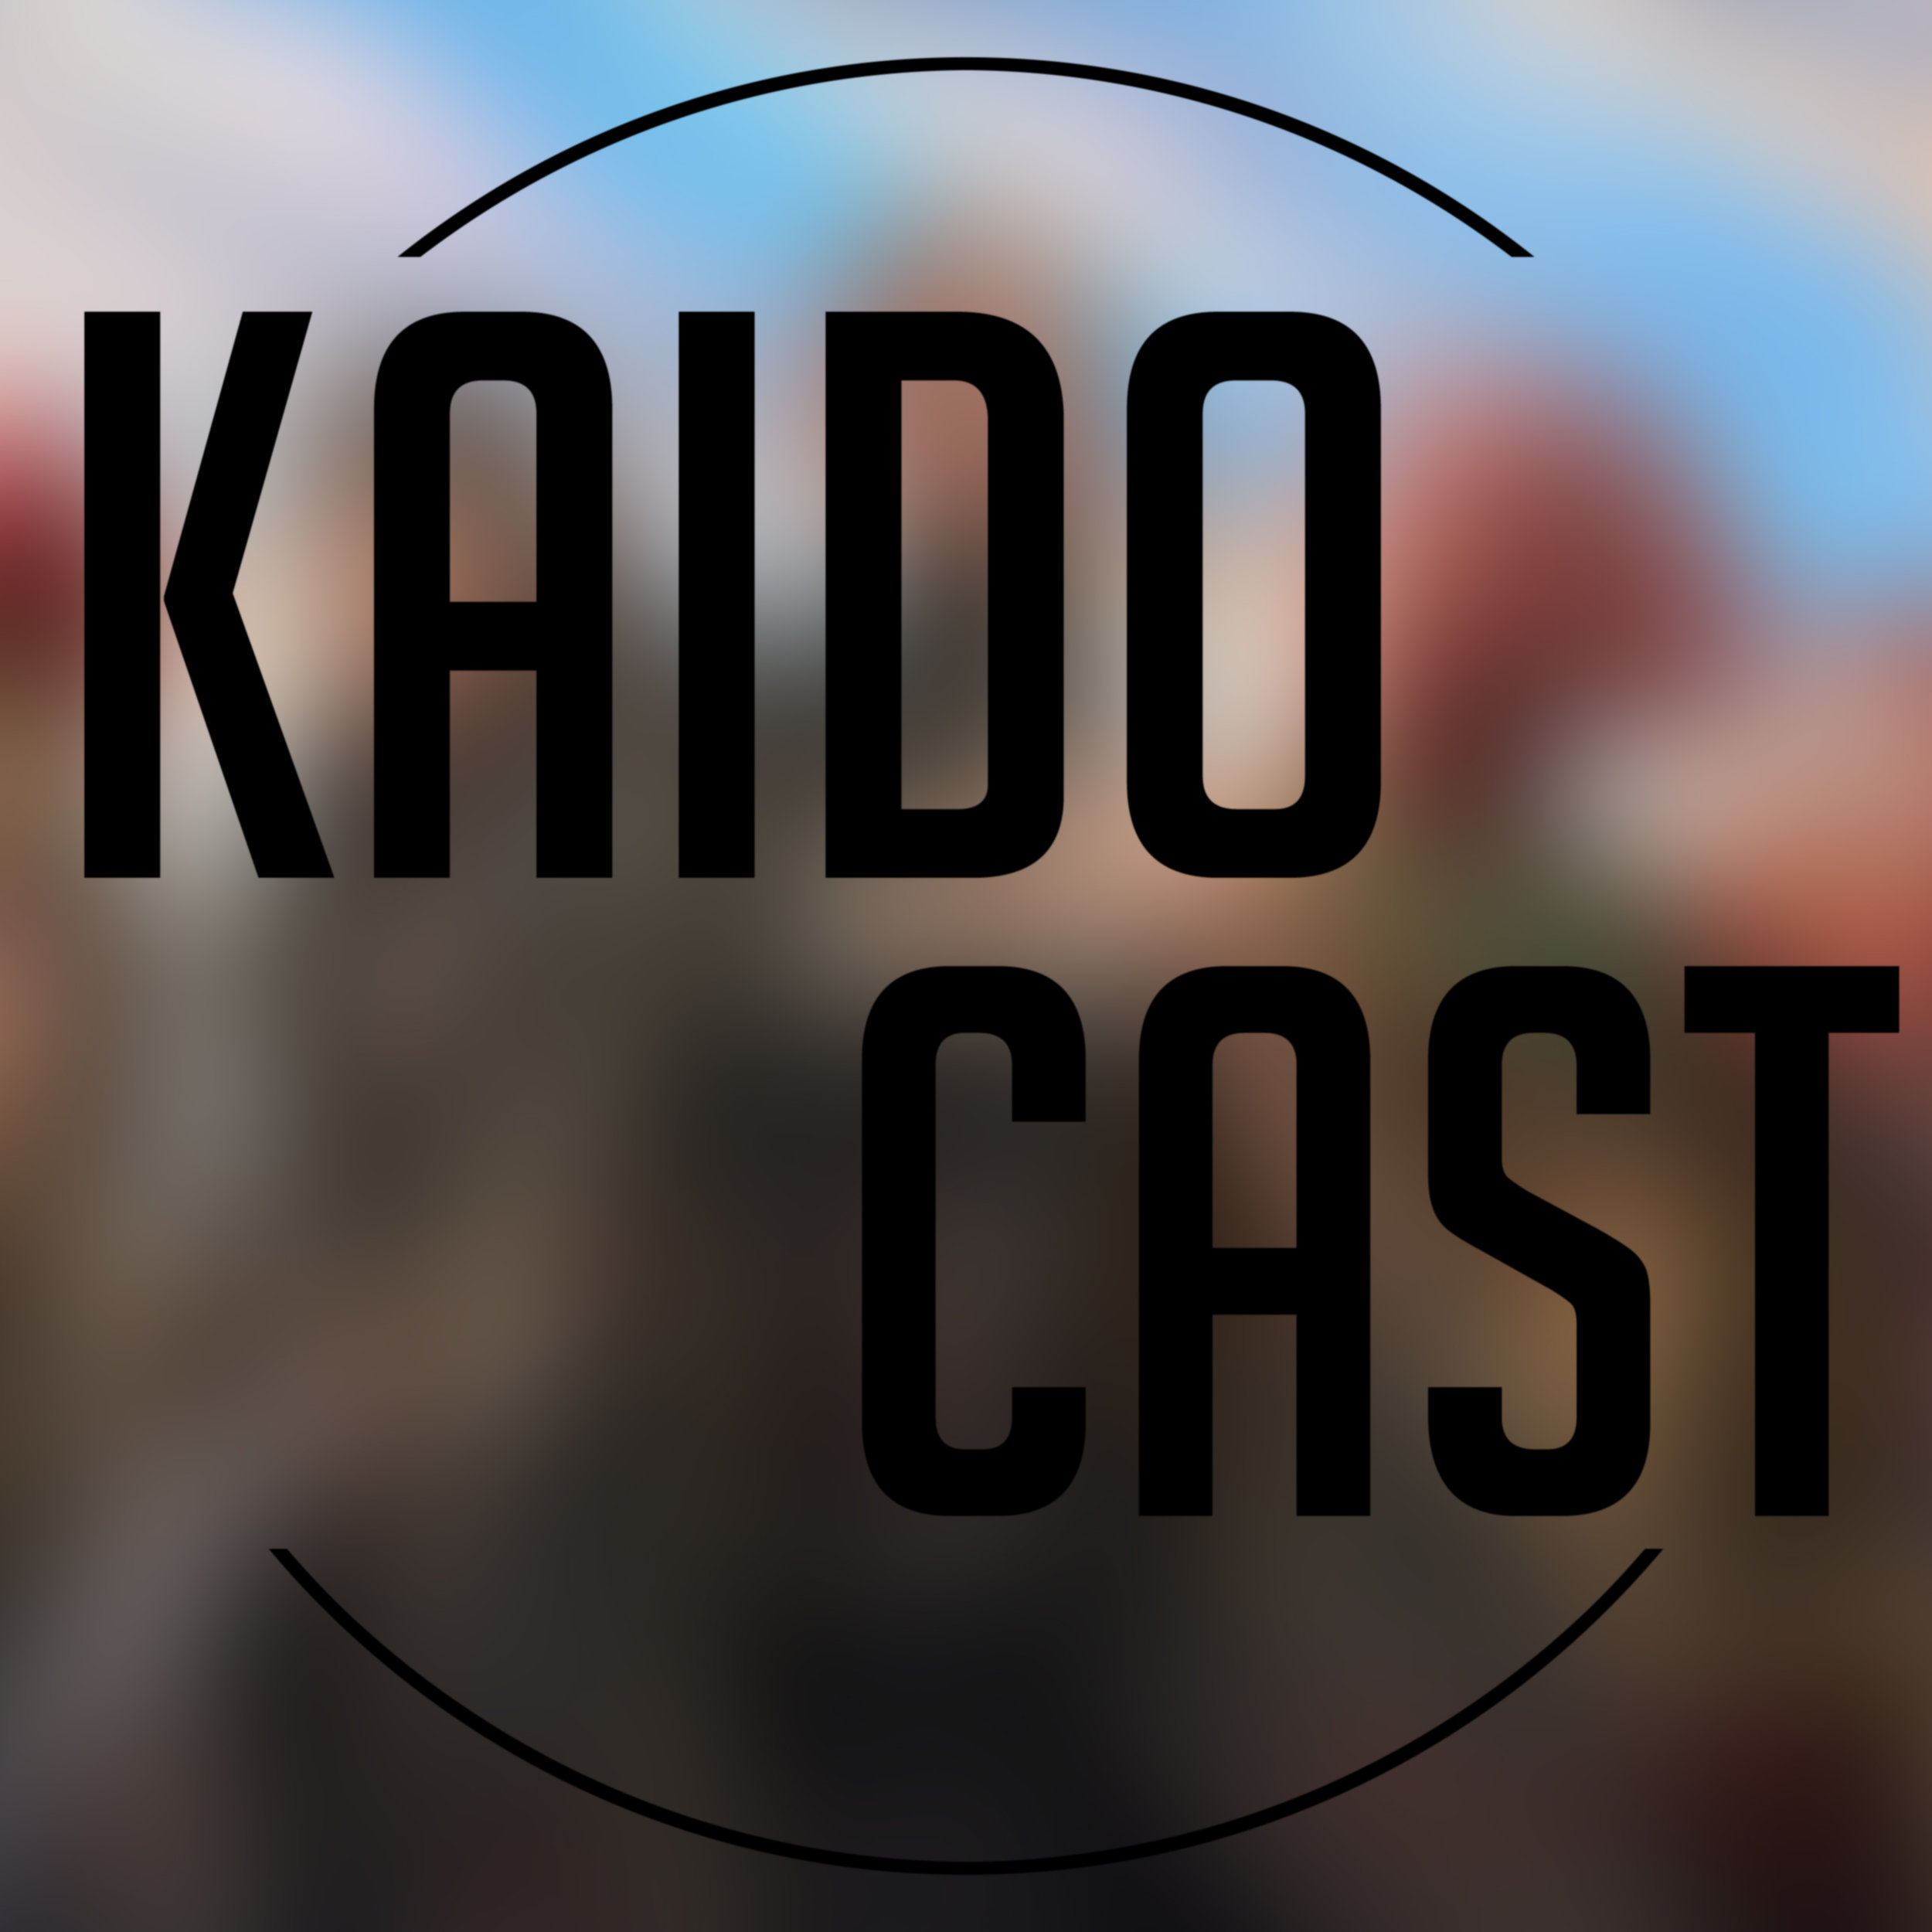 KAIDO Cast 15 - Super Mario Brazilian - This week Dave recounts his hours in Yakuza, while bringing new tales of Metroid and Divinity, Rob dabbles in emulation, and Zac talks about wanting to play games again.